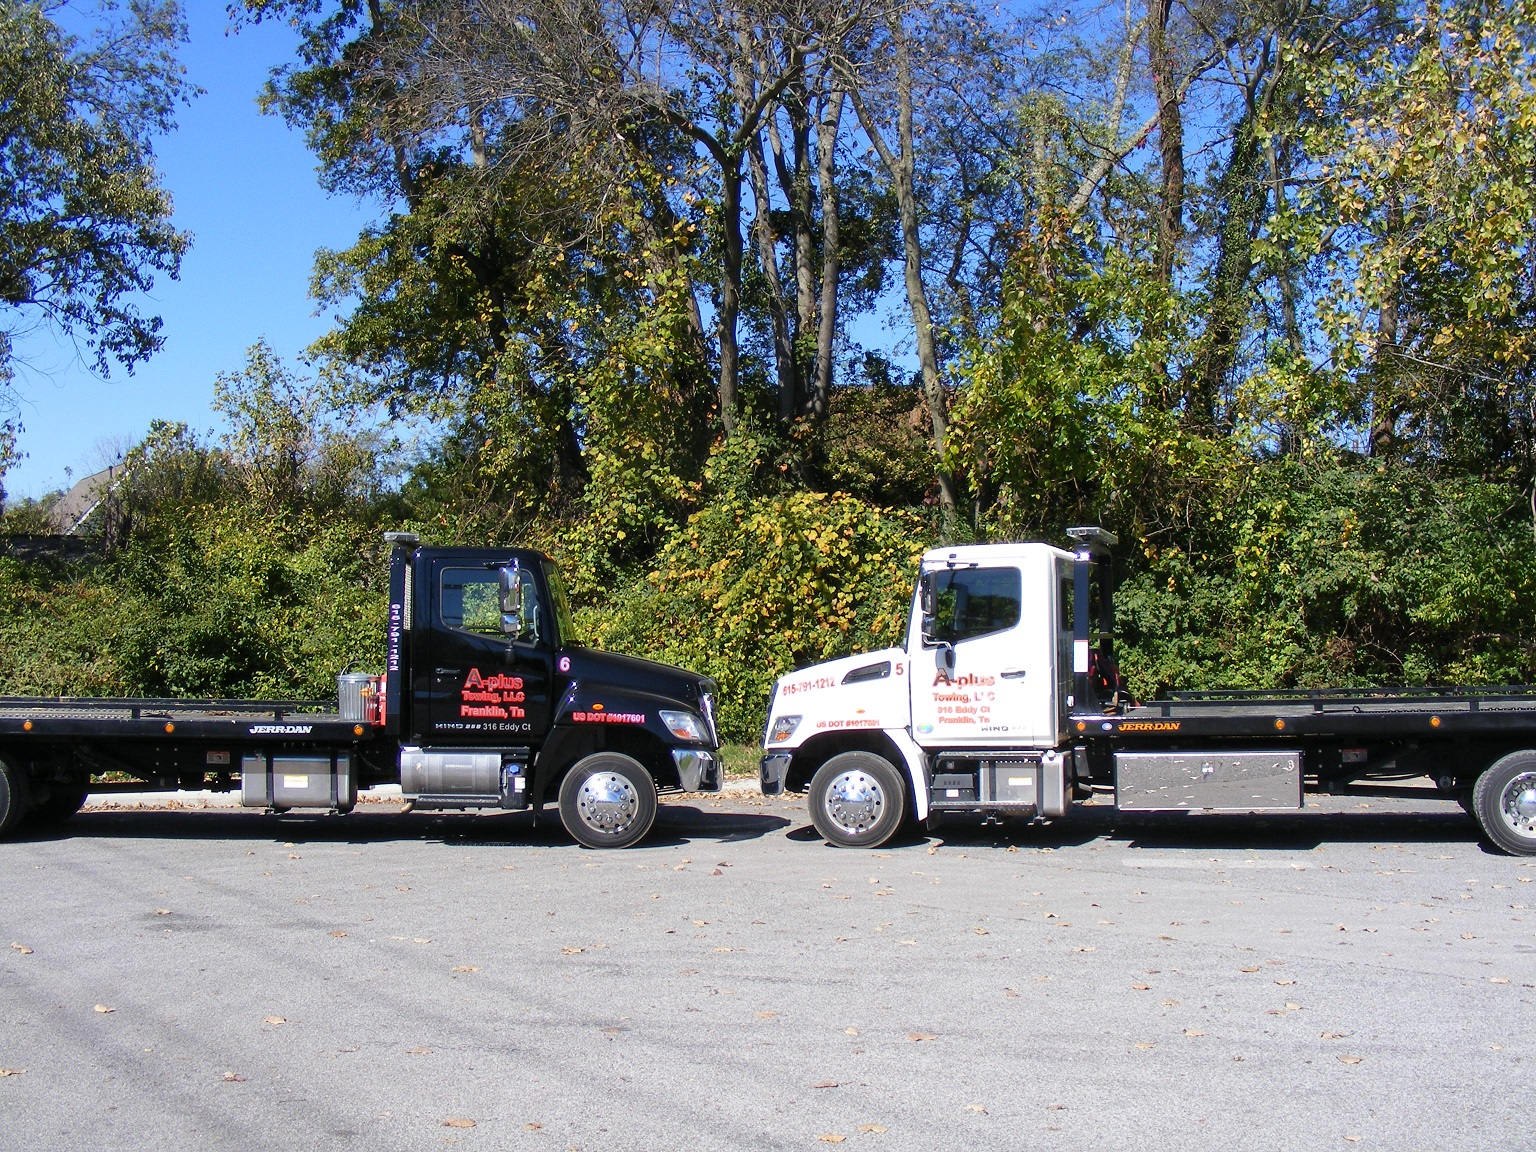 a-plus-towing-fuel-delivery-a